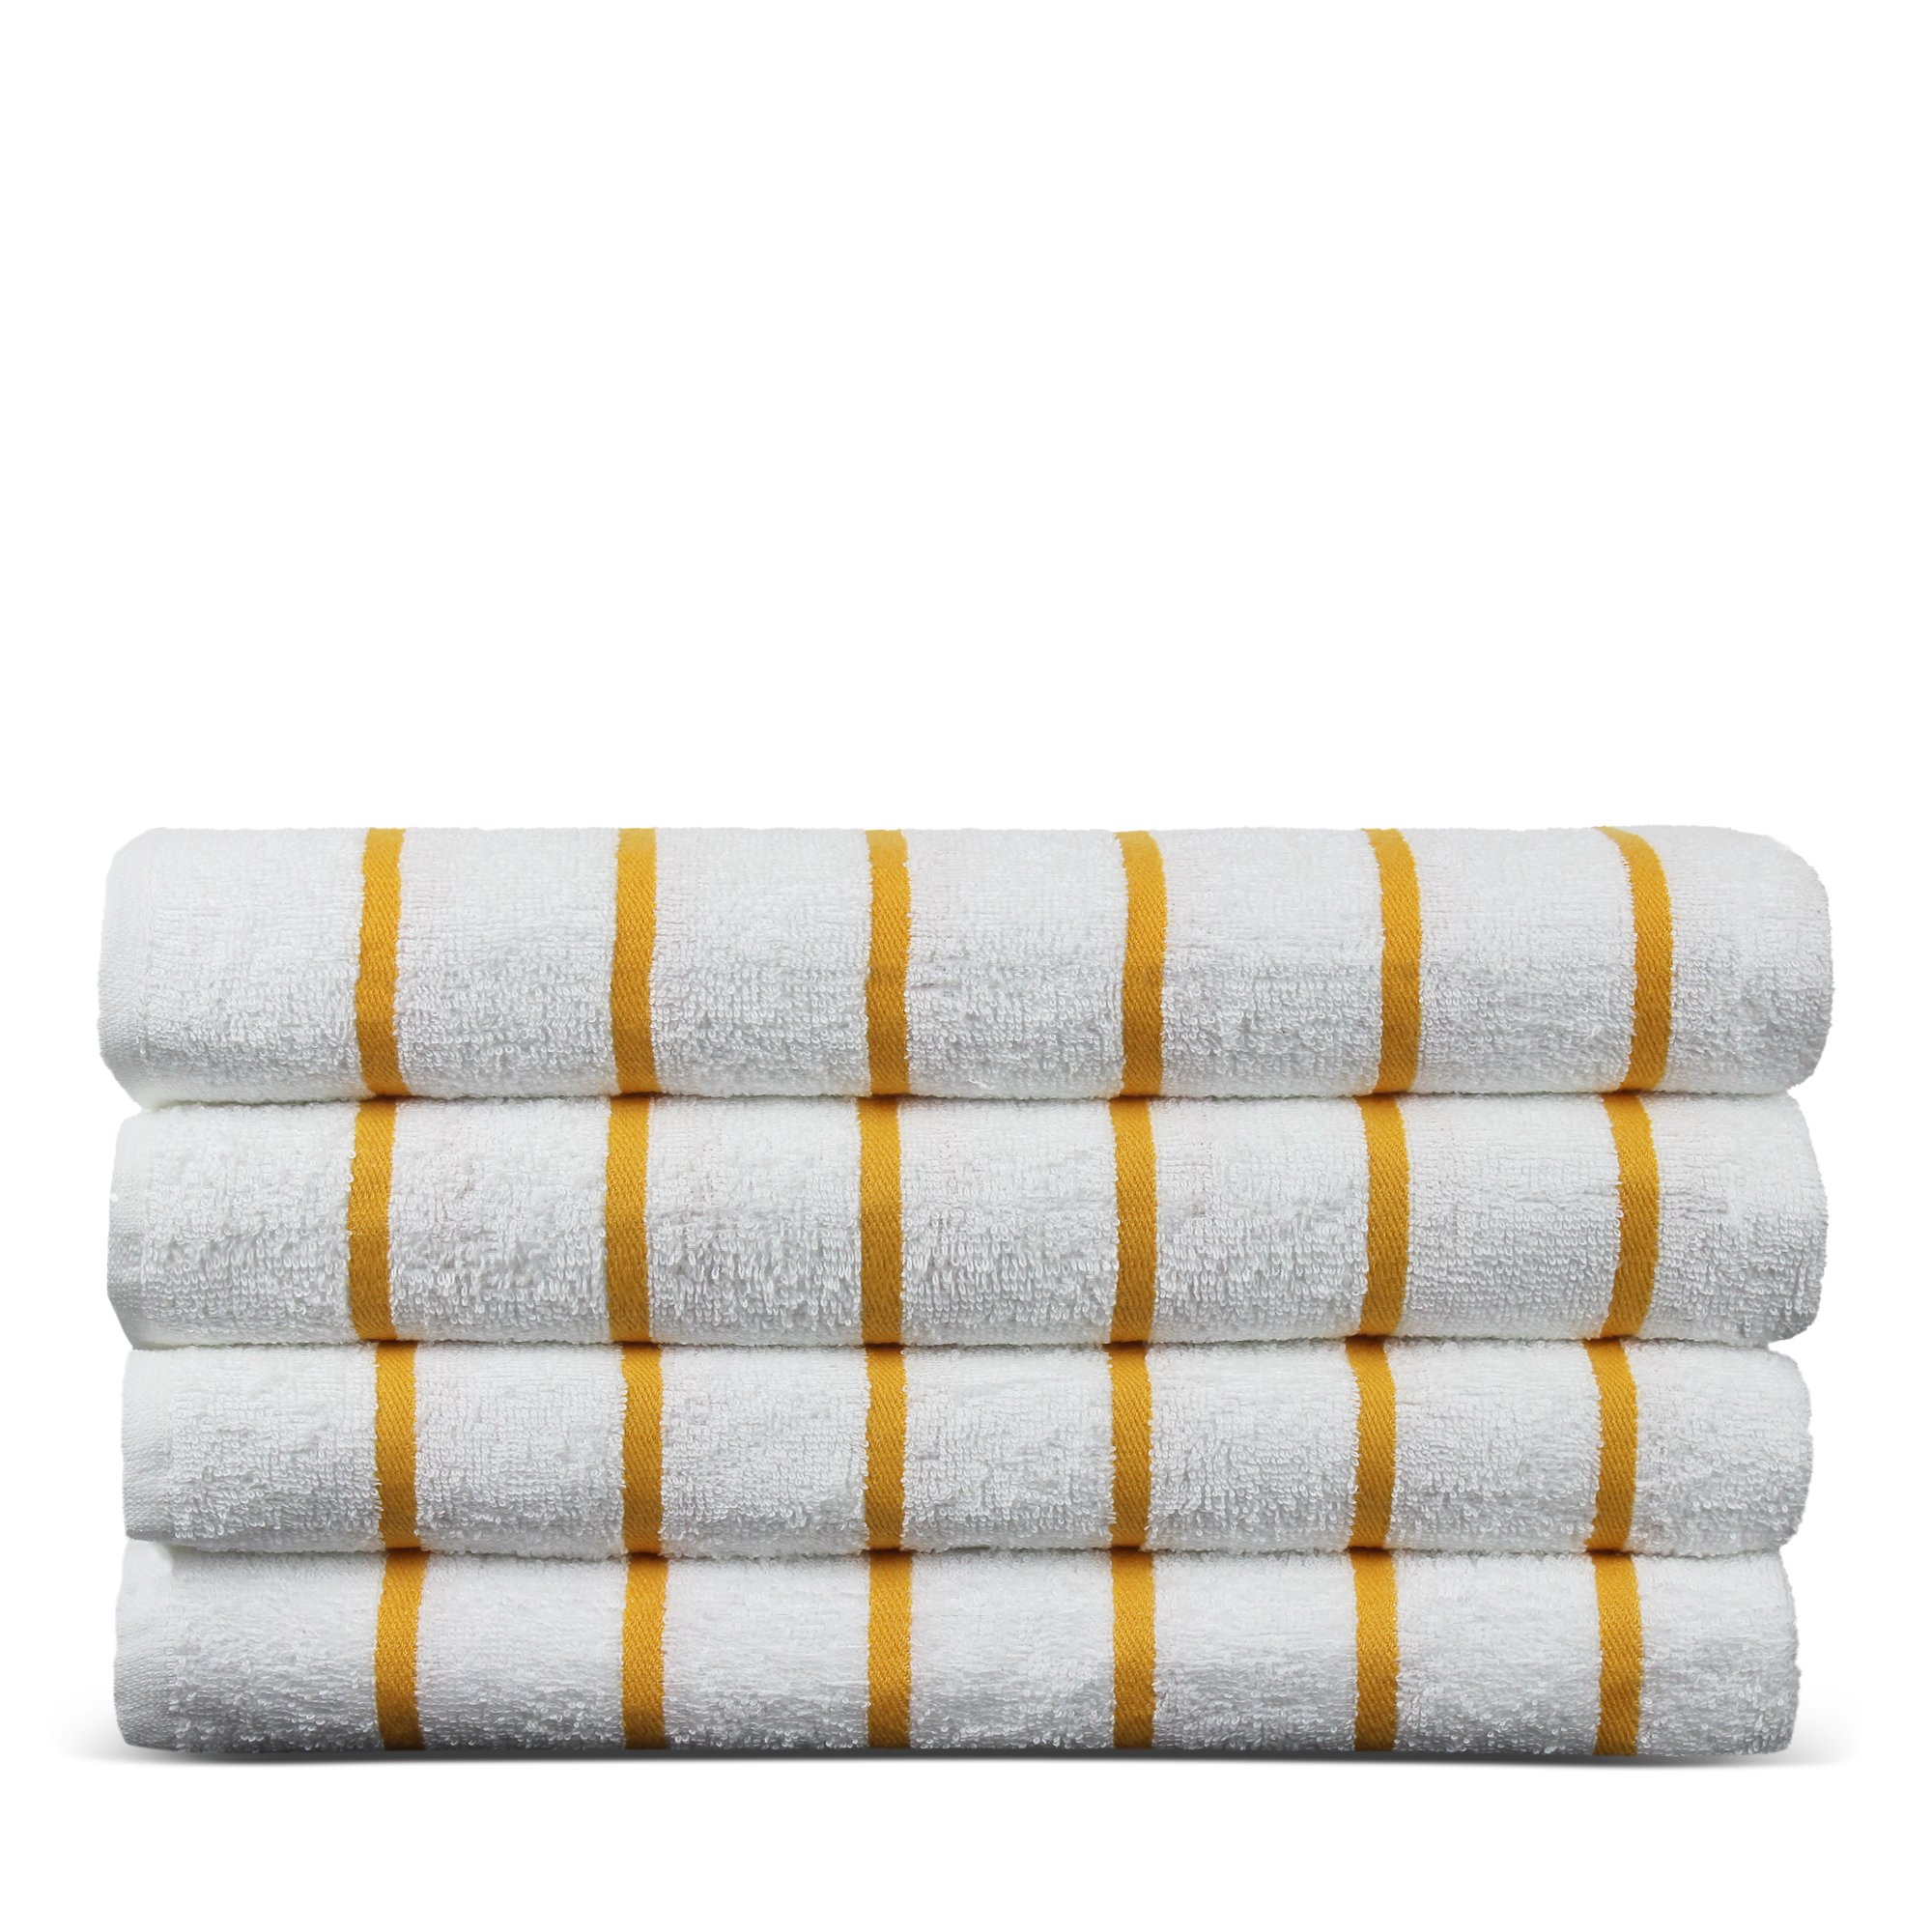 BC BARE COTTON Luxury Hotel & Spa Towel Turkish Cotton Pool Beach Towels - Yellow - Striped - Set of 4